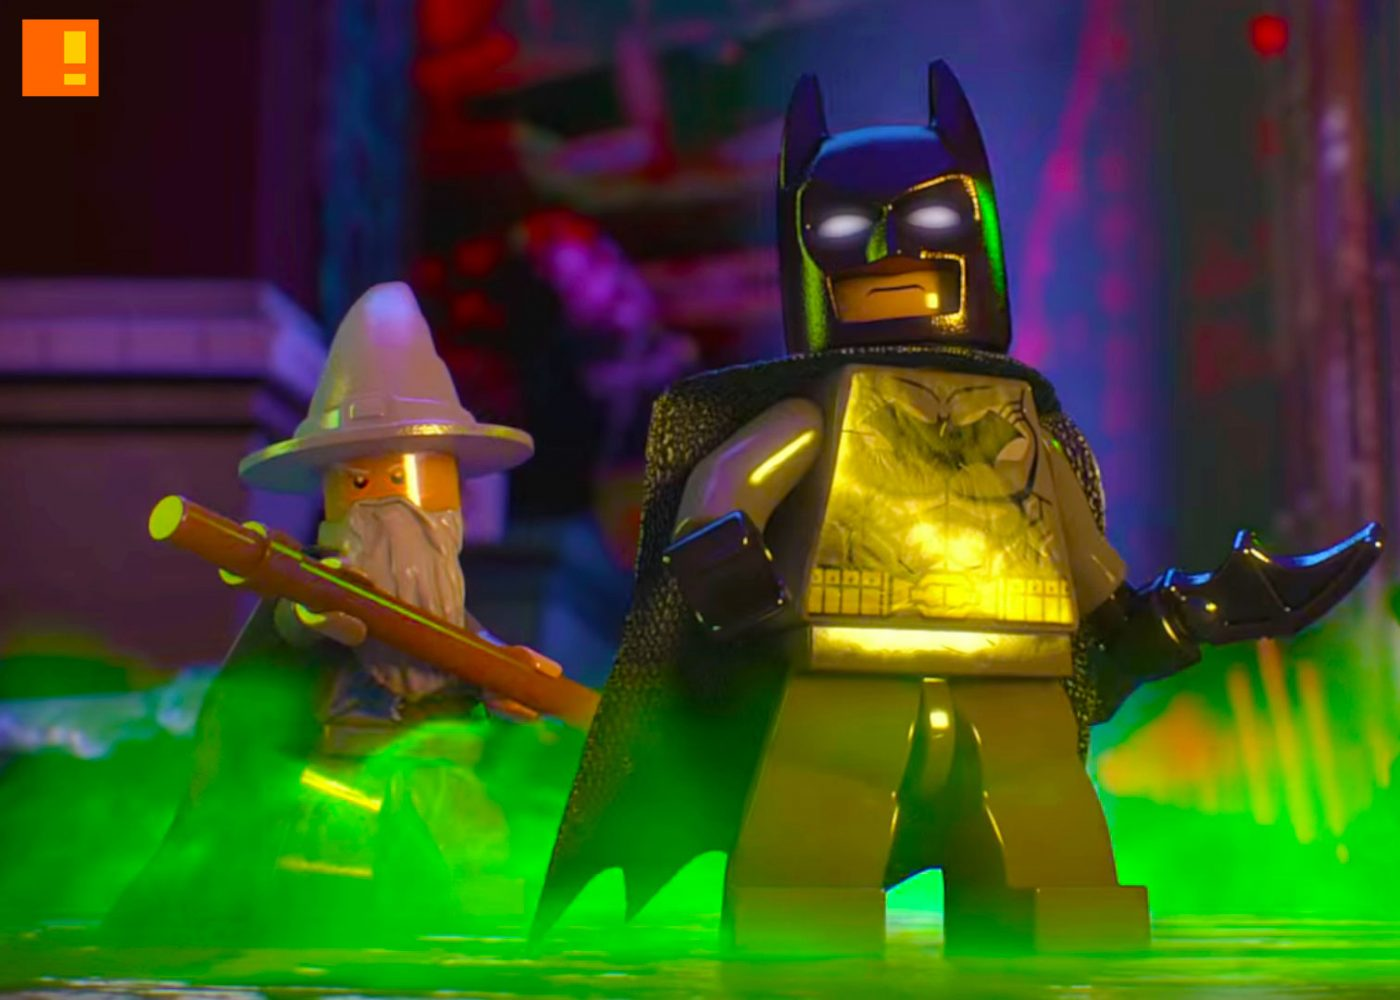 lego dimensions, wizard of oz, batman, dc comics, ghostbusters, slimer, lord of the rings, precious, sonic the hedgehog, gremlins, et, superman, wb games, lego, the action pixel, entertainment on tap